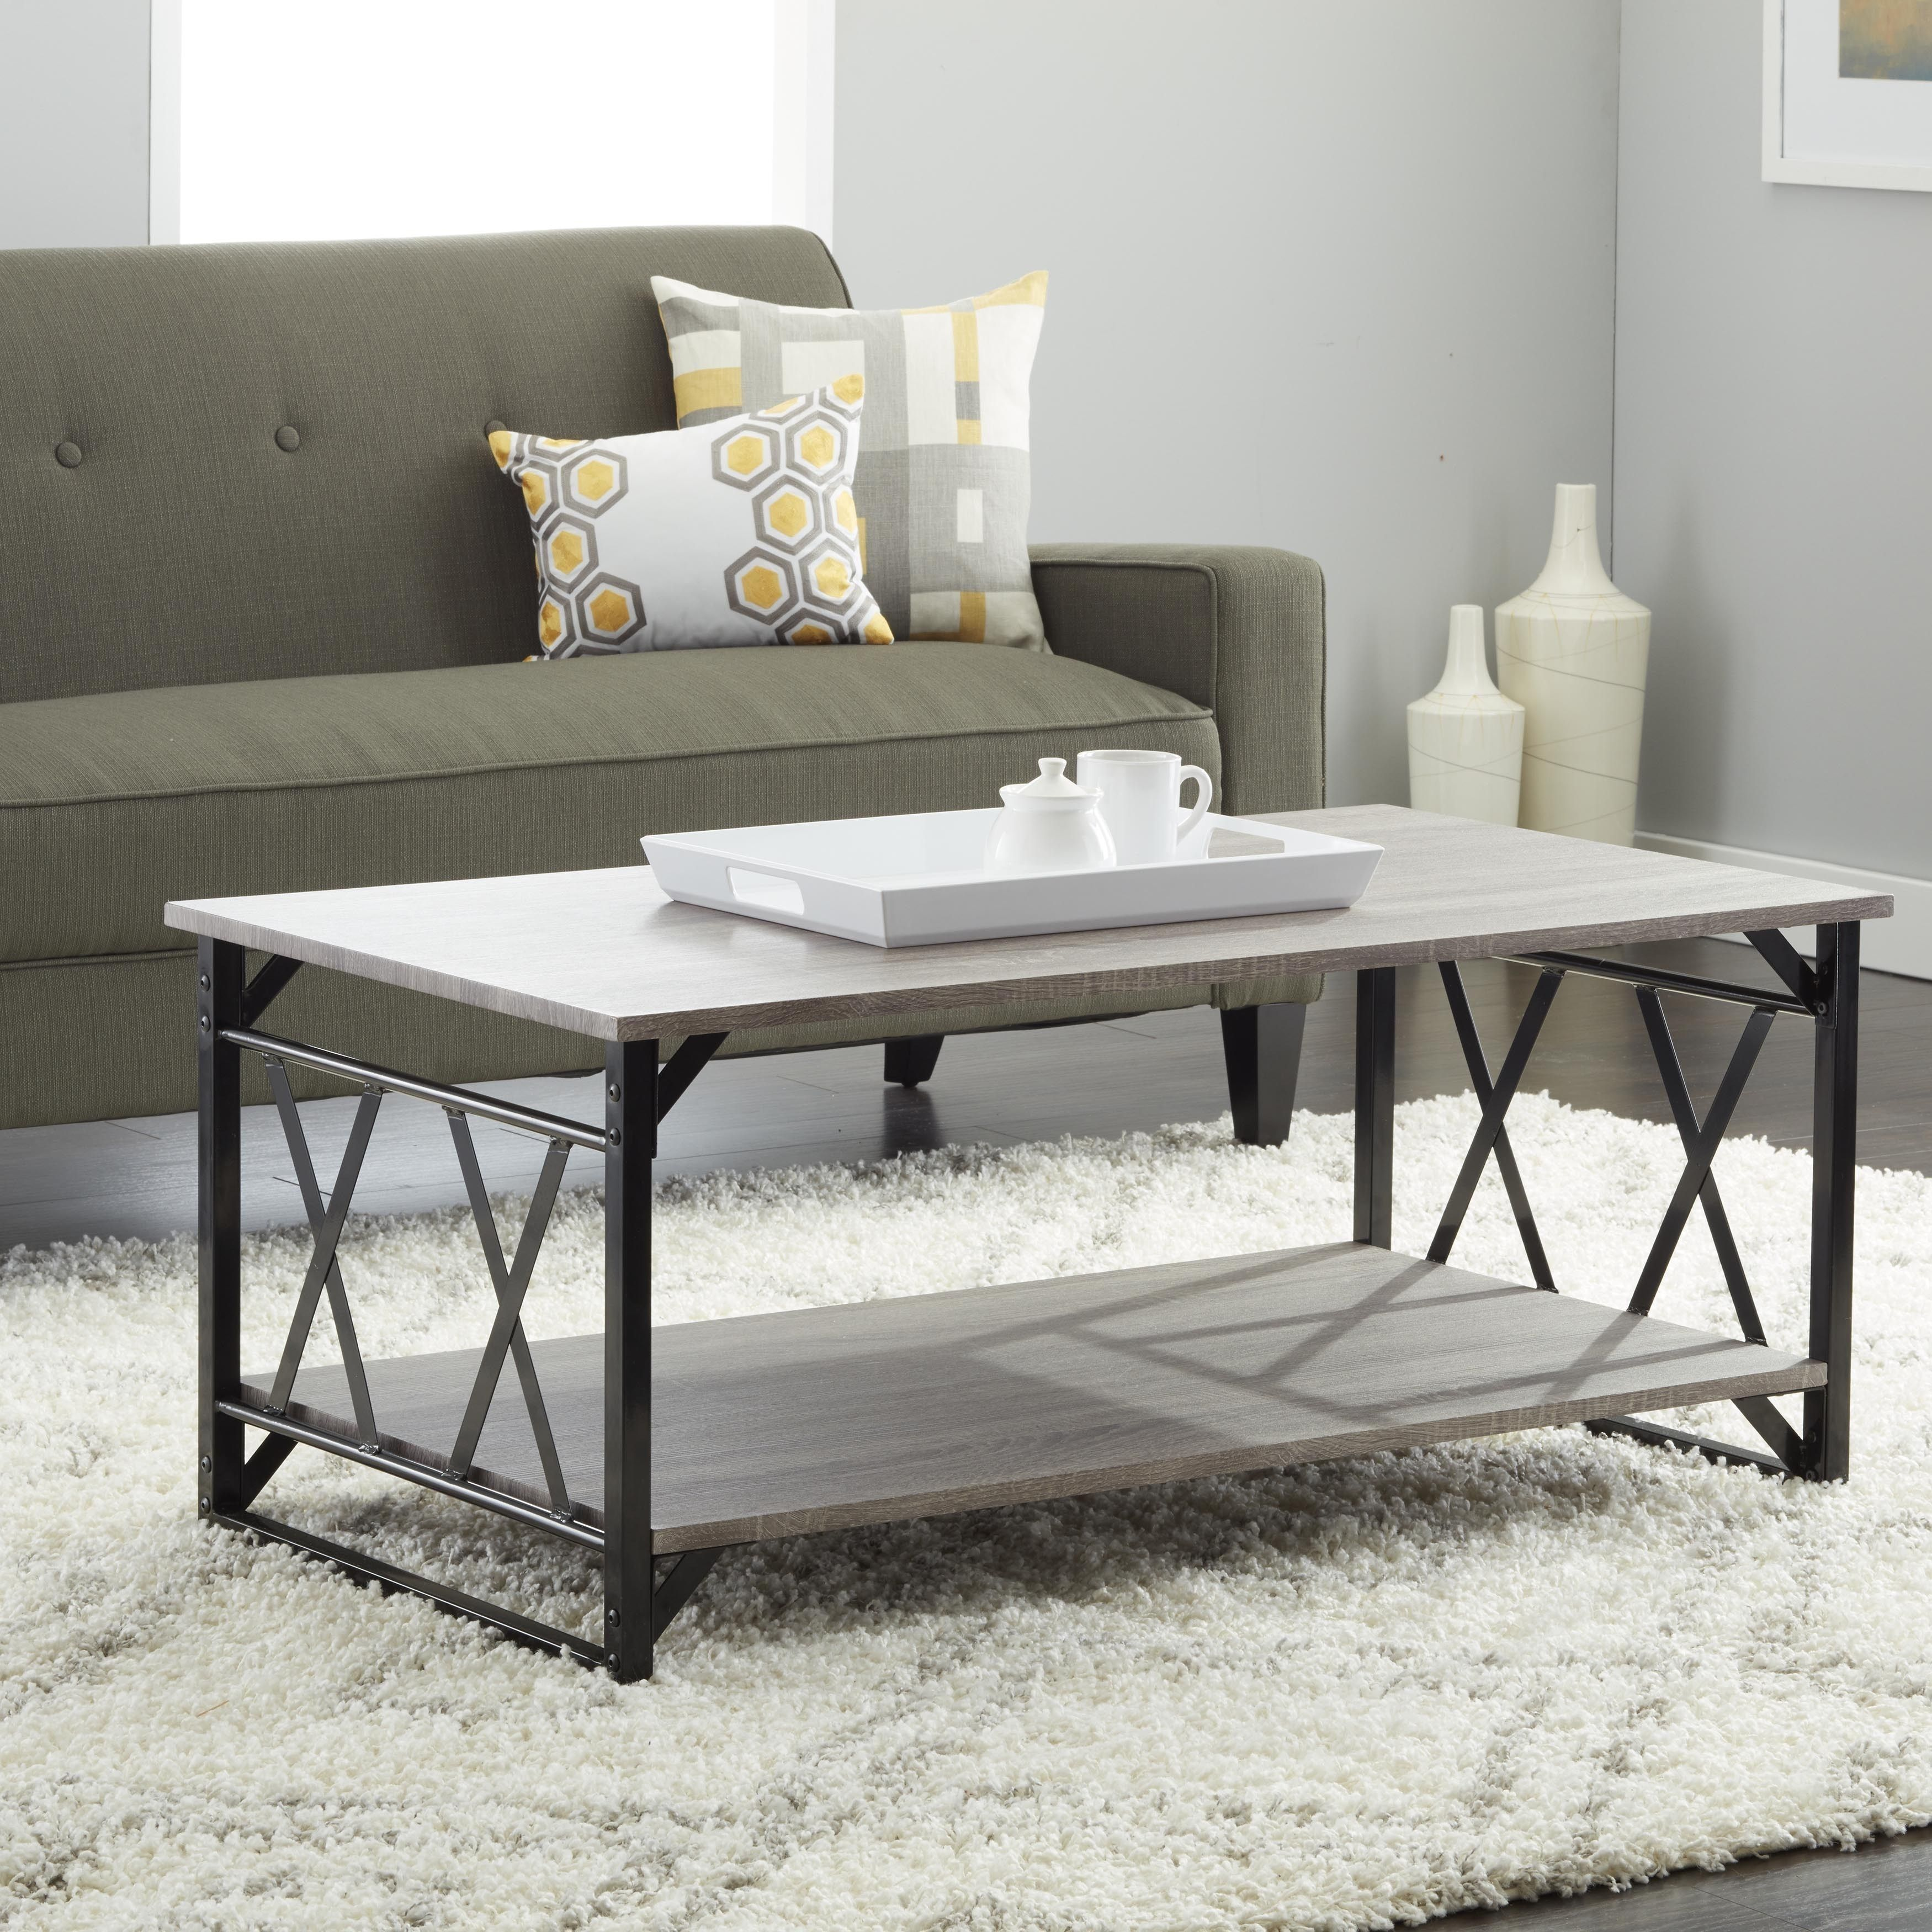 reclaimed style grey coffee table with double 'x' framei love